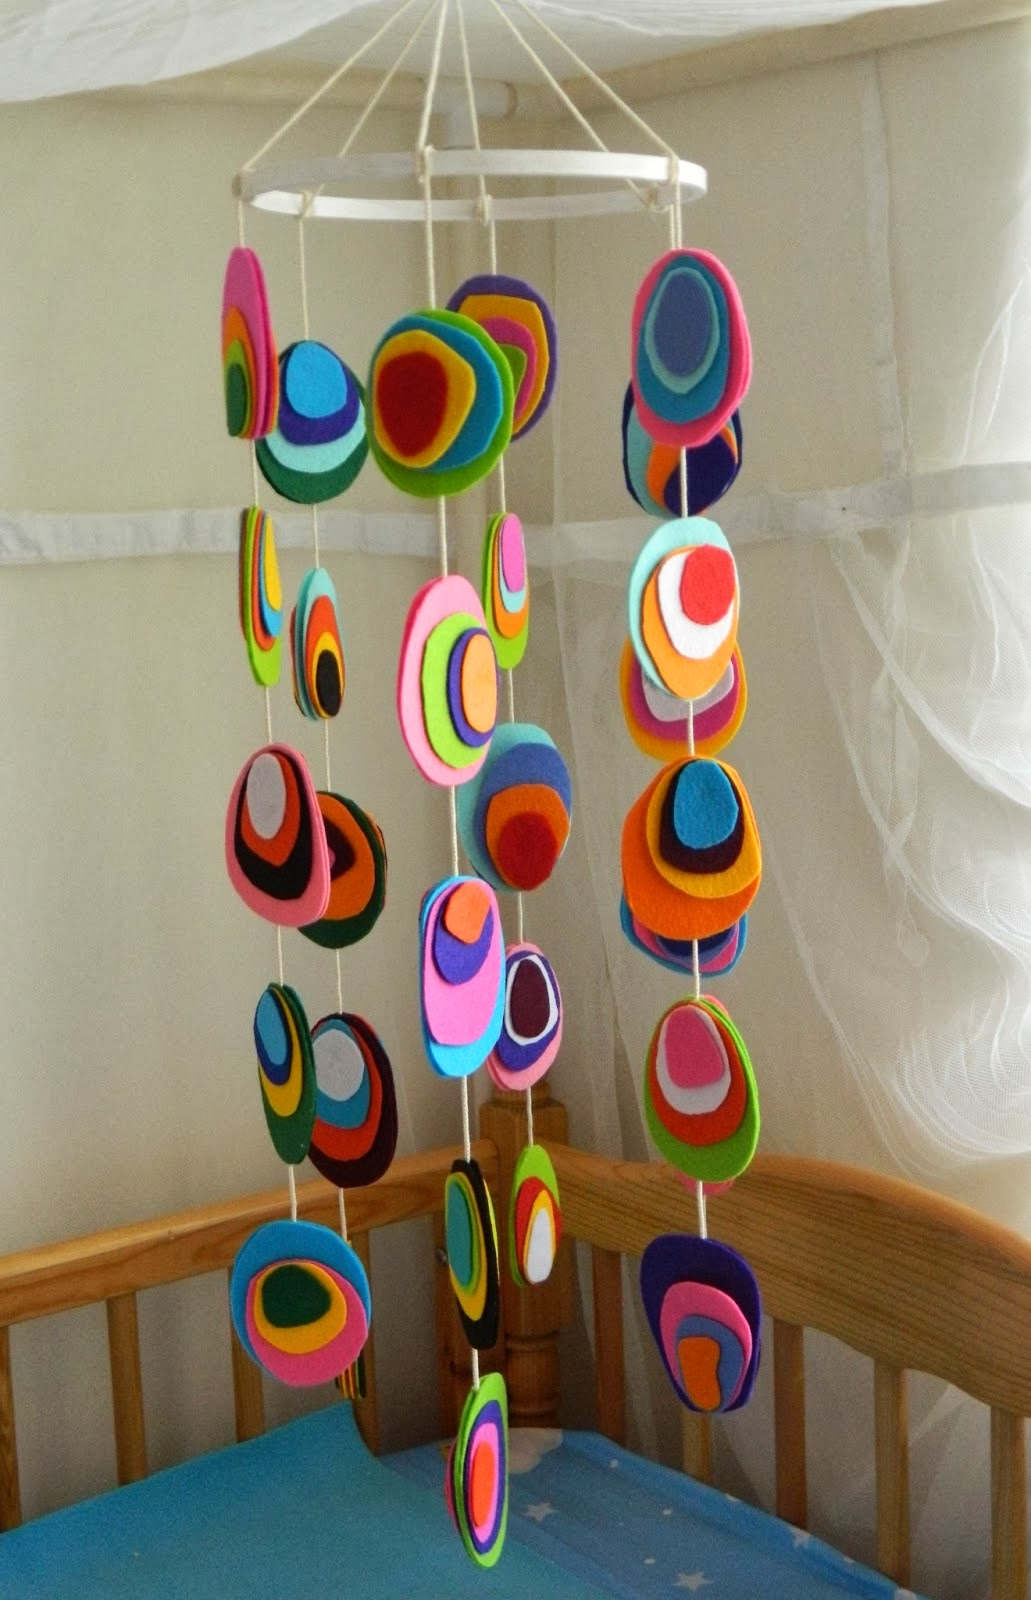 6 Homemade Baby Crib Mobiles - DIY Craft Projects